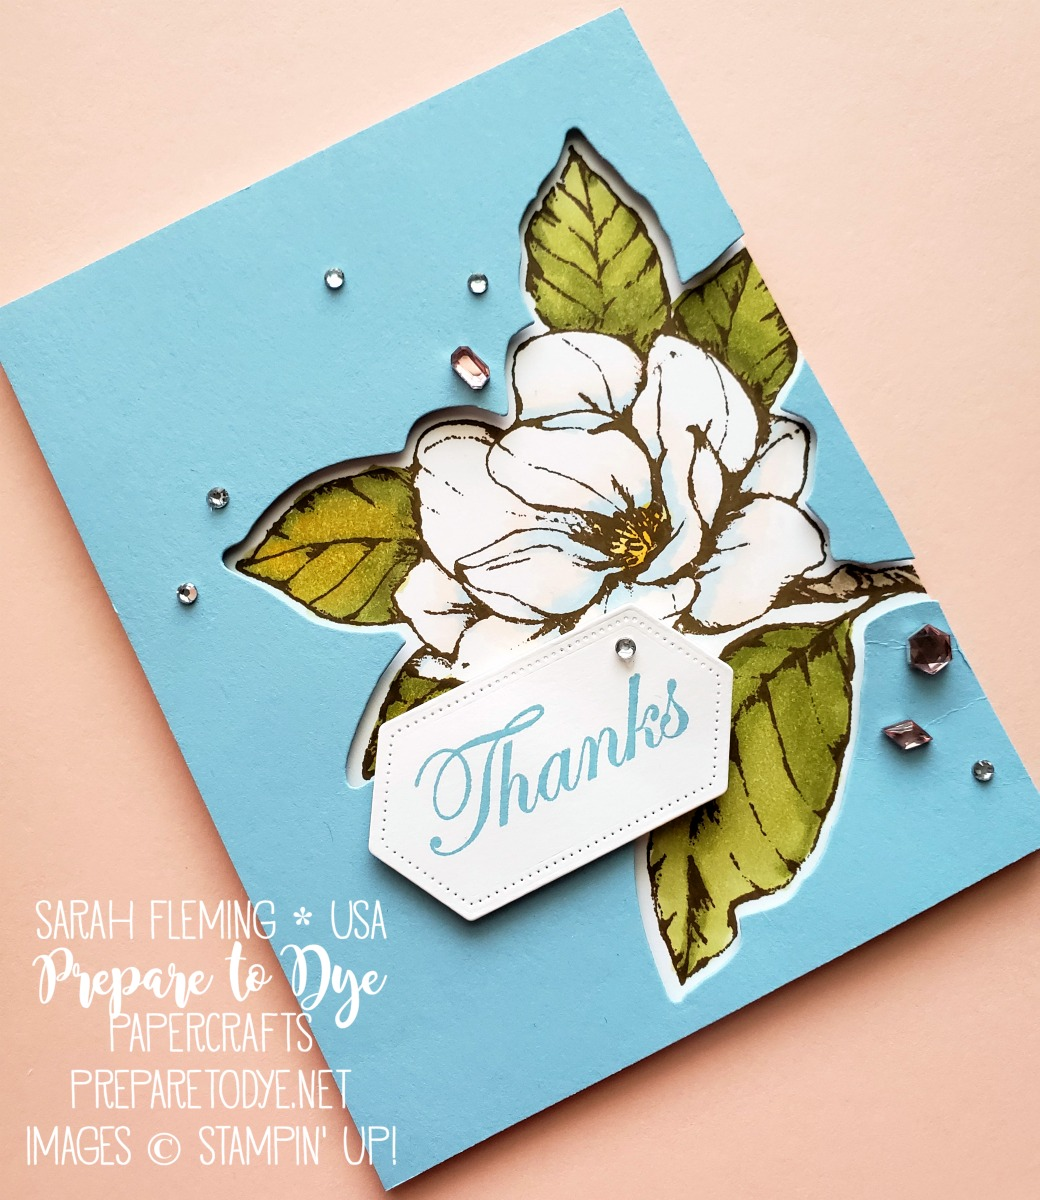 Stampin' Up! SNEAK PEEK: Handmade thank you card using Good Morning Magnolia stamps with Magnolia Memory dies, Stitched Nested Label dies, Stampin' Blends alcohol markers - Sarah Fleming - Prepare to Dye Papercrafts